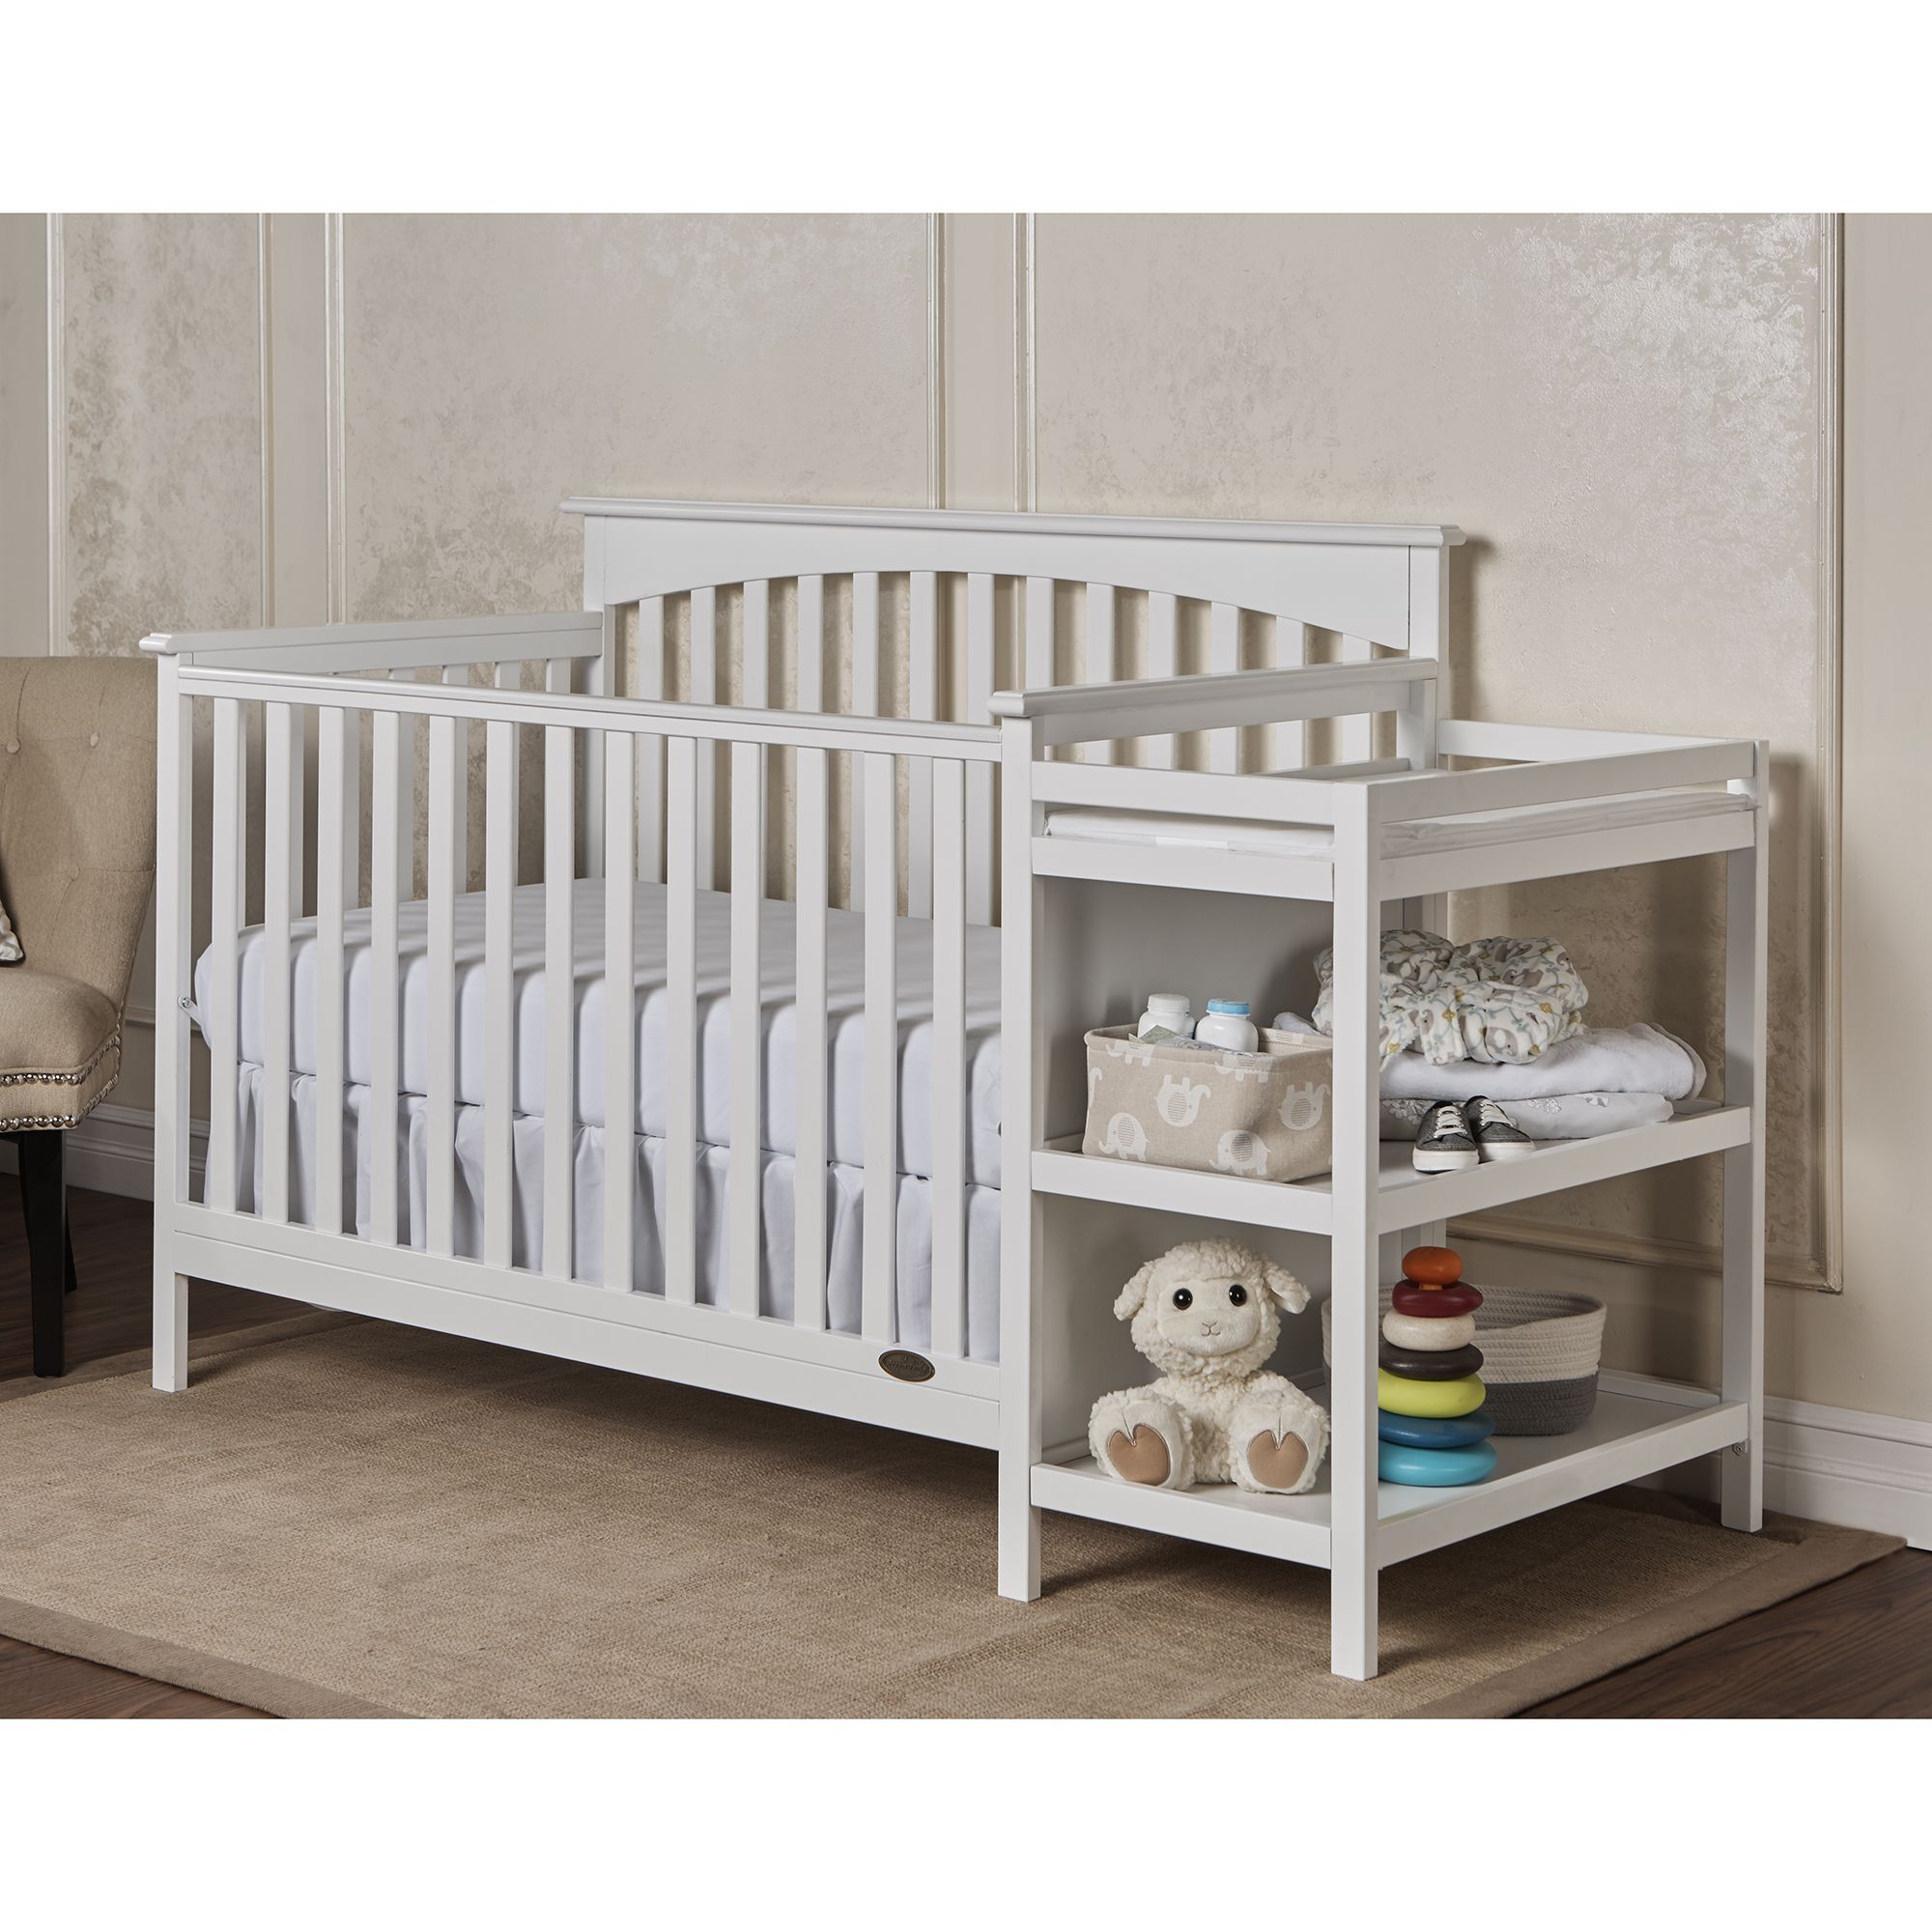 com toddler crib turns graco bed mama x hint into